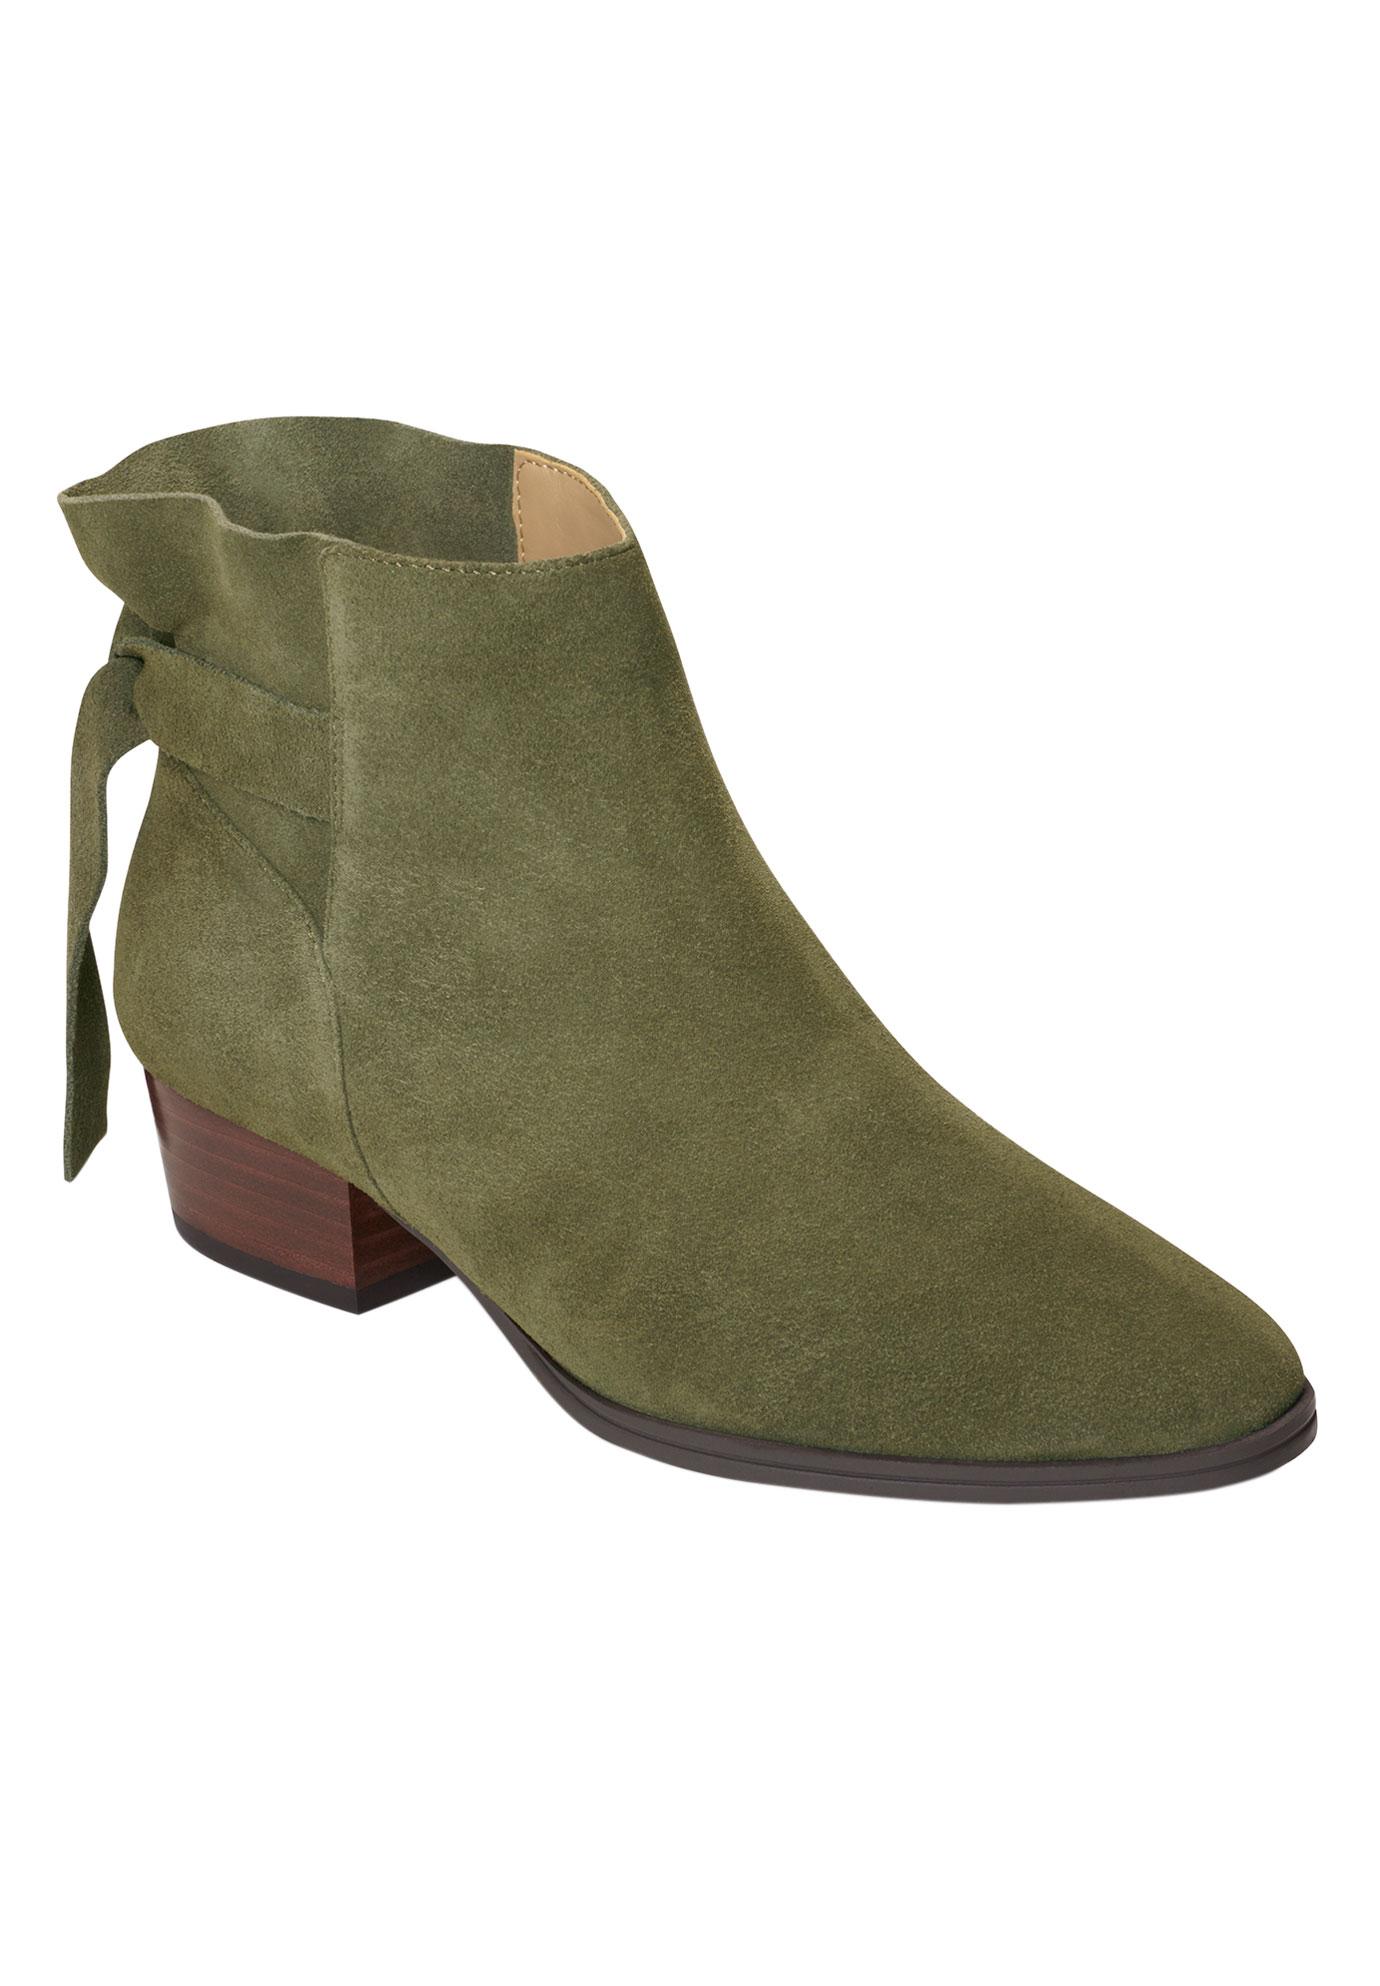 Crosswalk Booties by Aerosoles®,